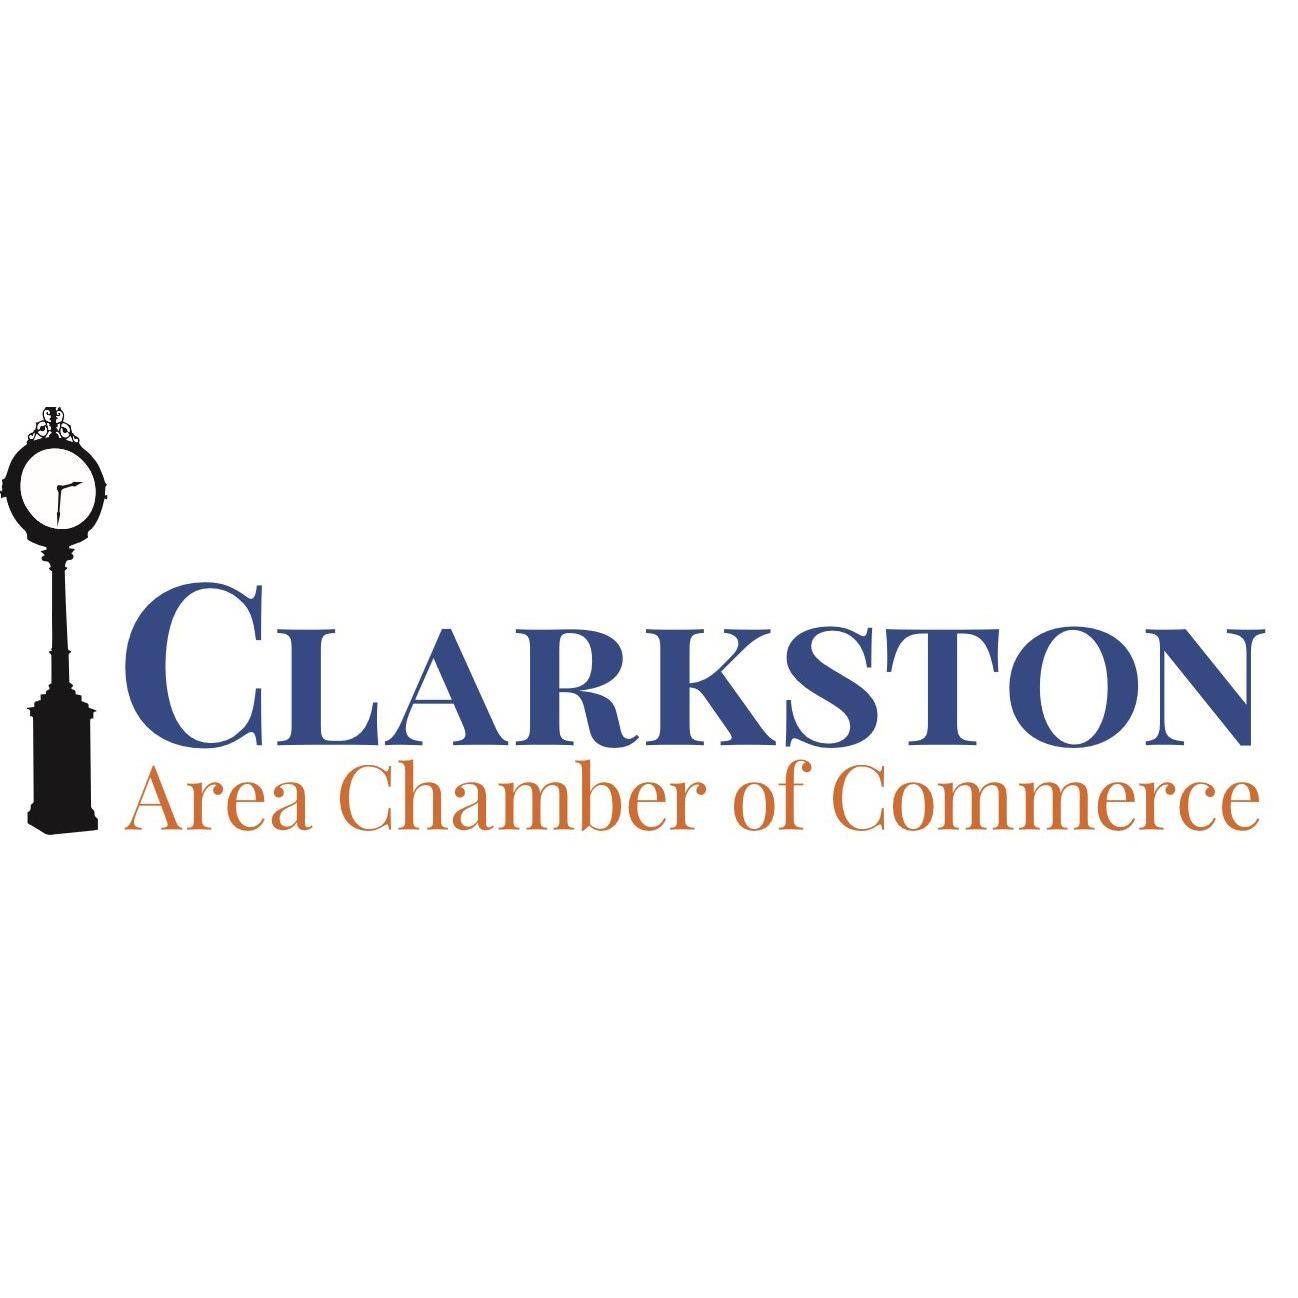 Clarkston Area Chamber of Commerce